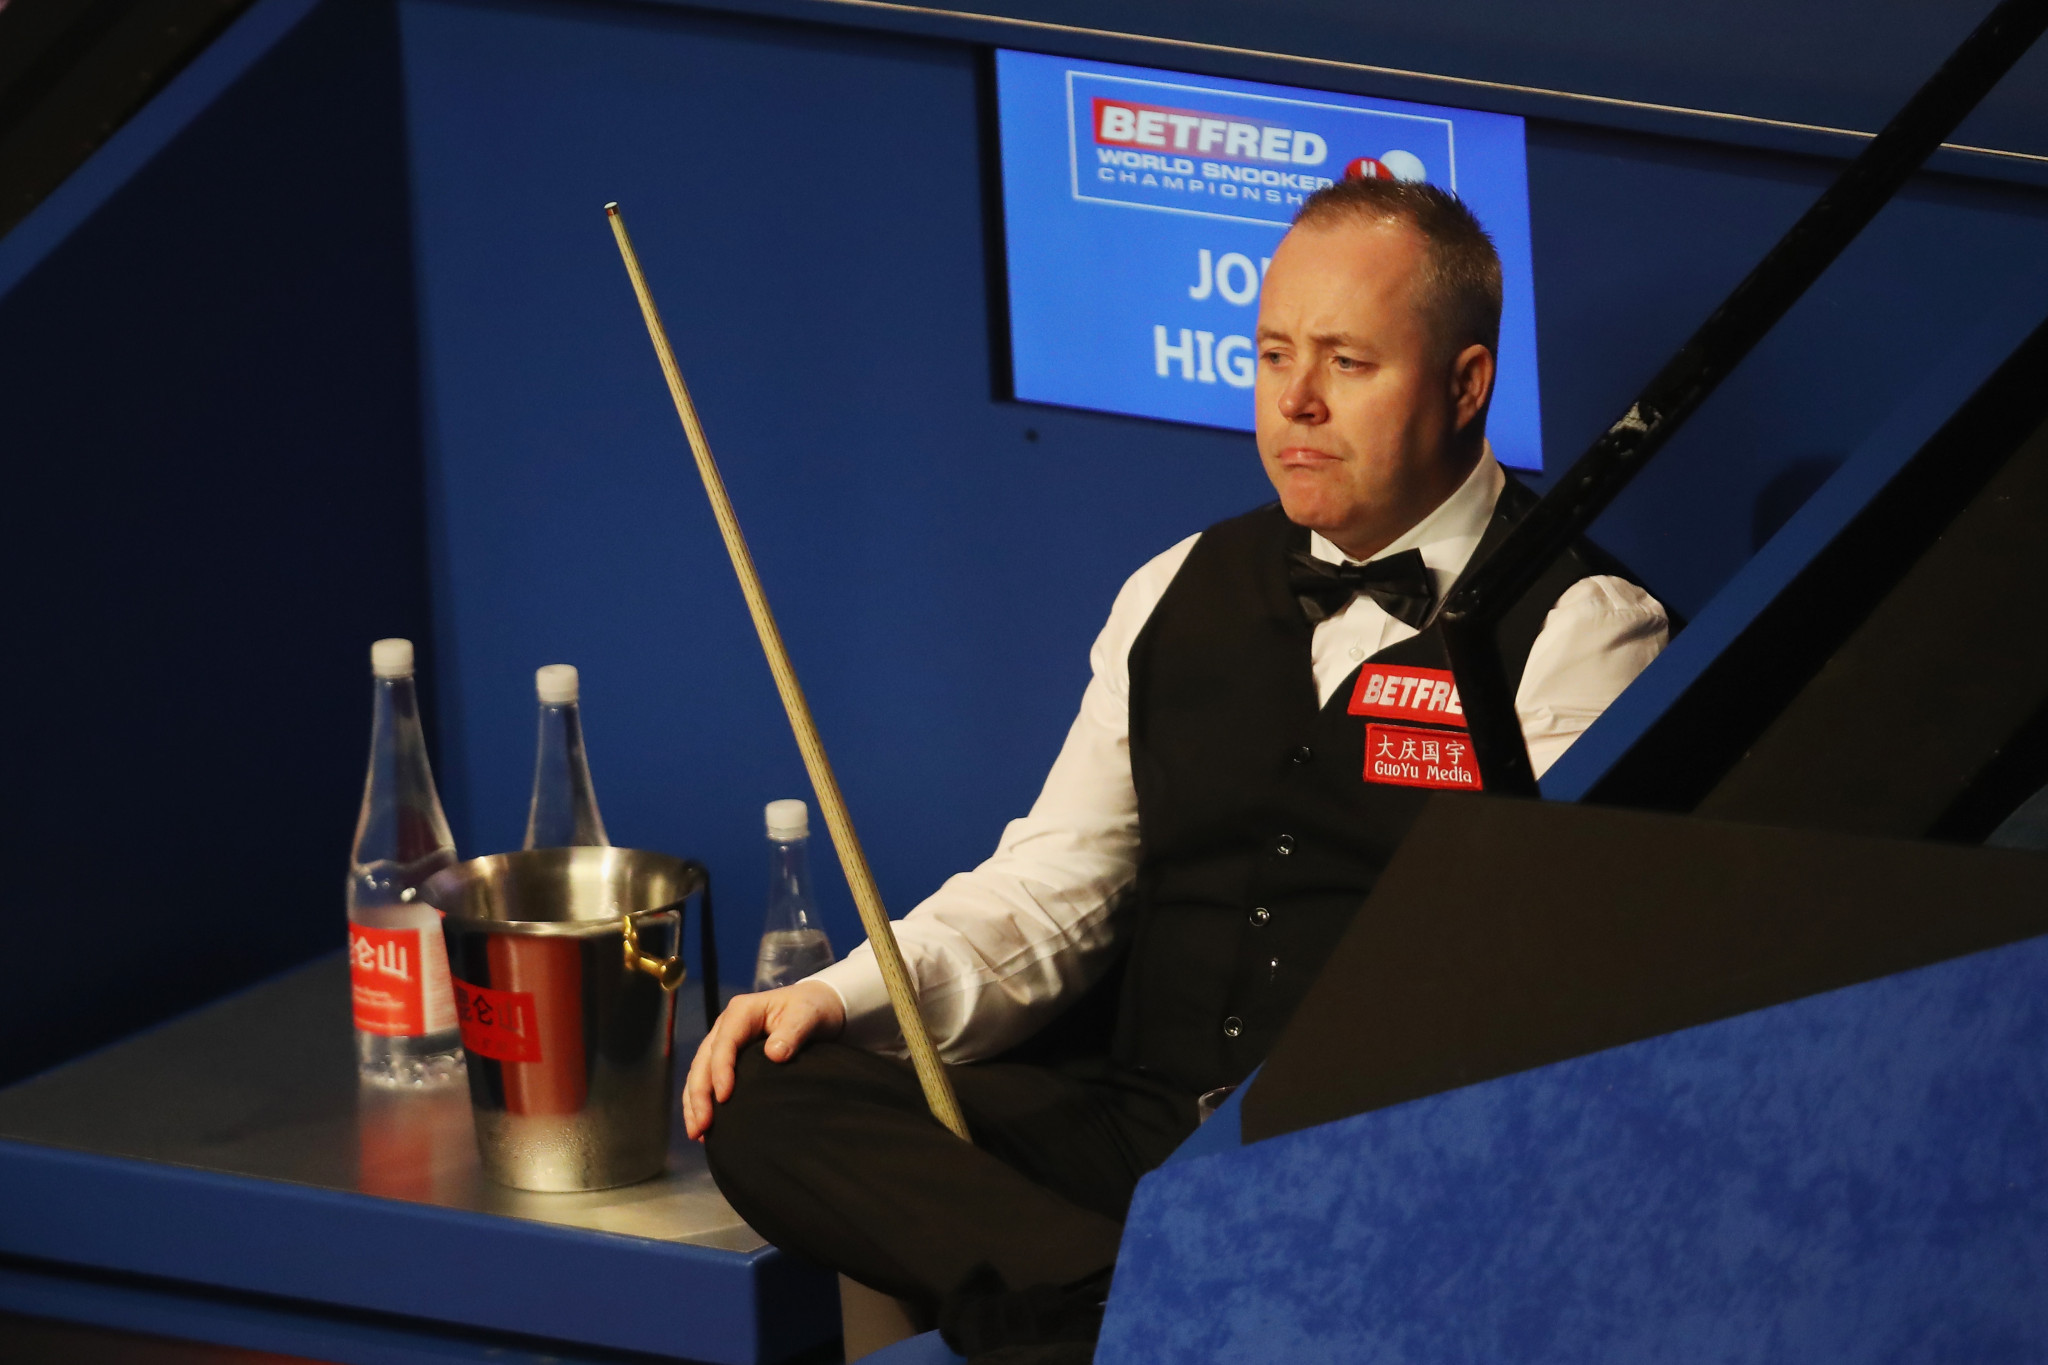 John Higgins is four frames away from a place in the final of the World Snooker Championship in Sheffield ©Getty Images